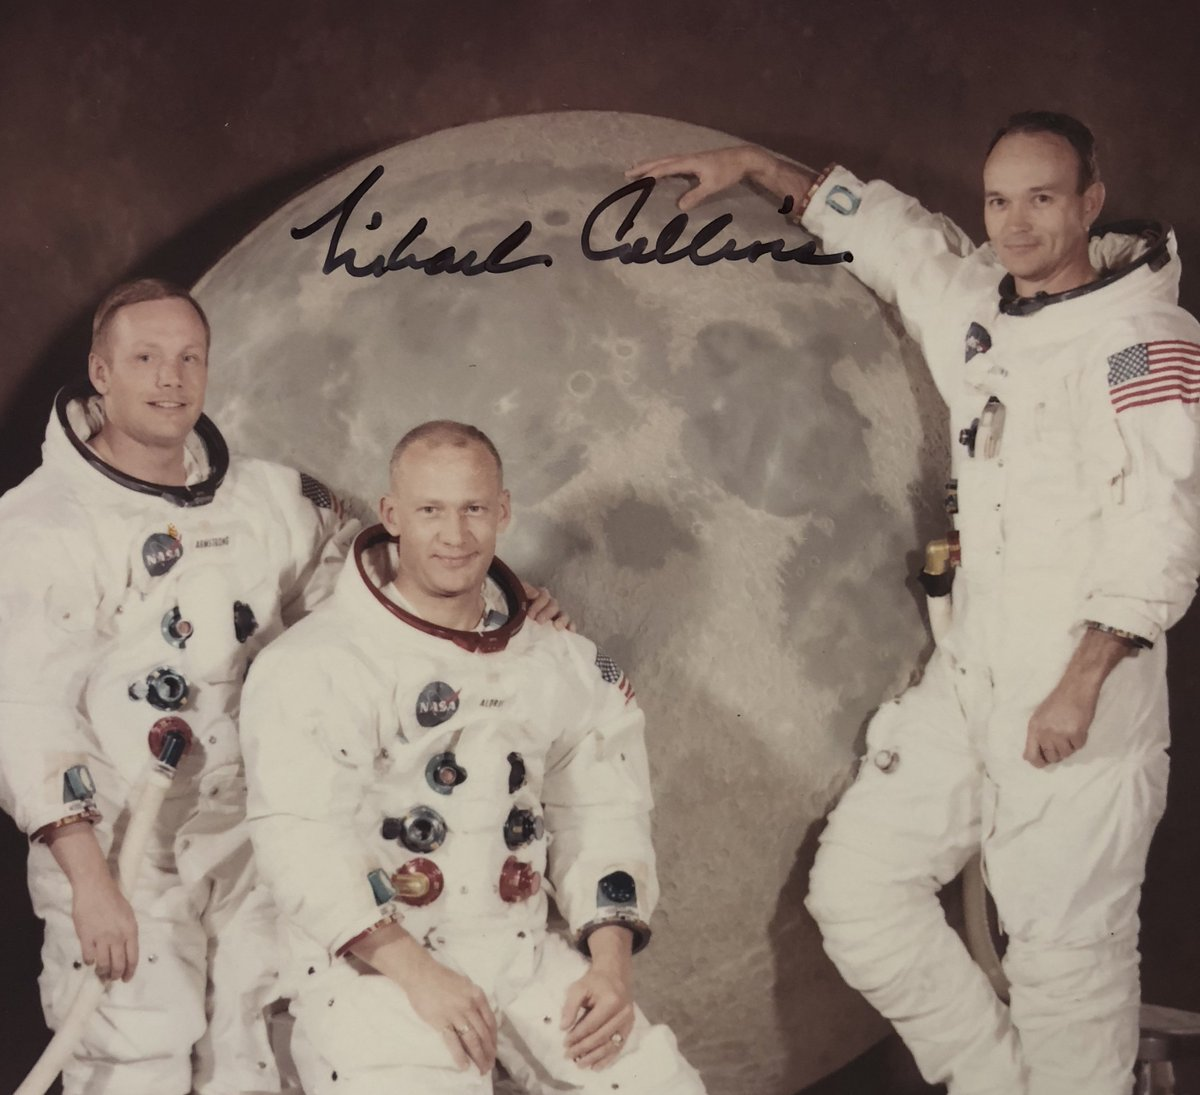 Apollo 11 astronaut Michael Collins shares unreleased photo he found 'at the bottom of a box'